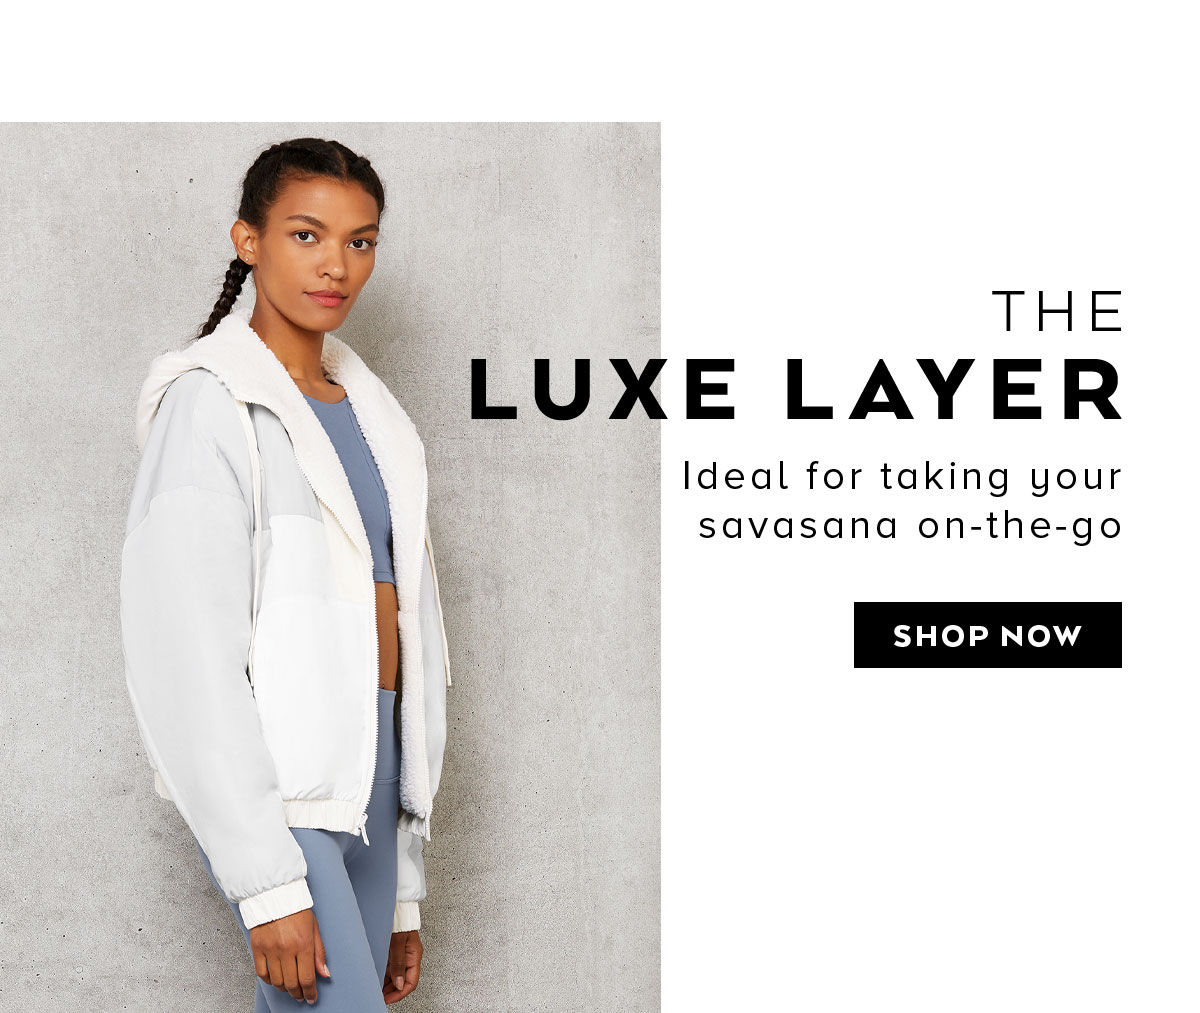 THE LUXE LAYER. Ideal for taking your savasana on-the-go. SHOP NOW